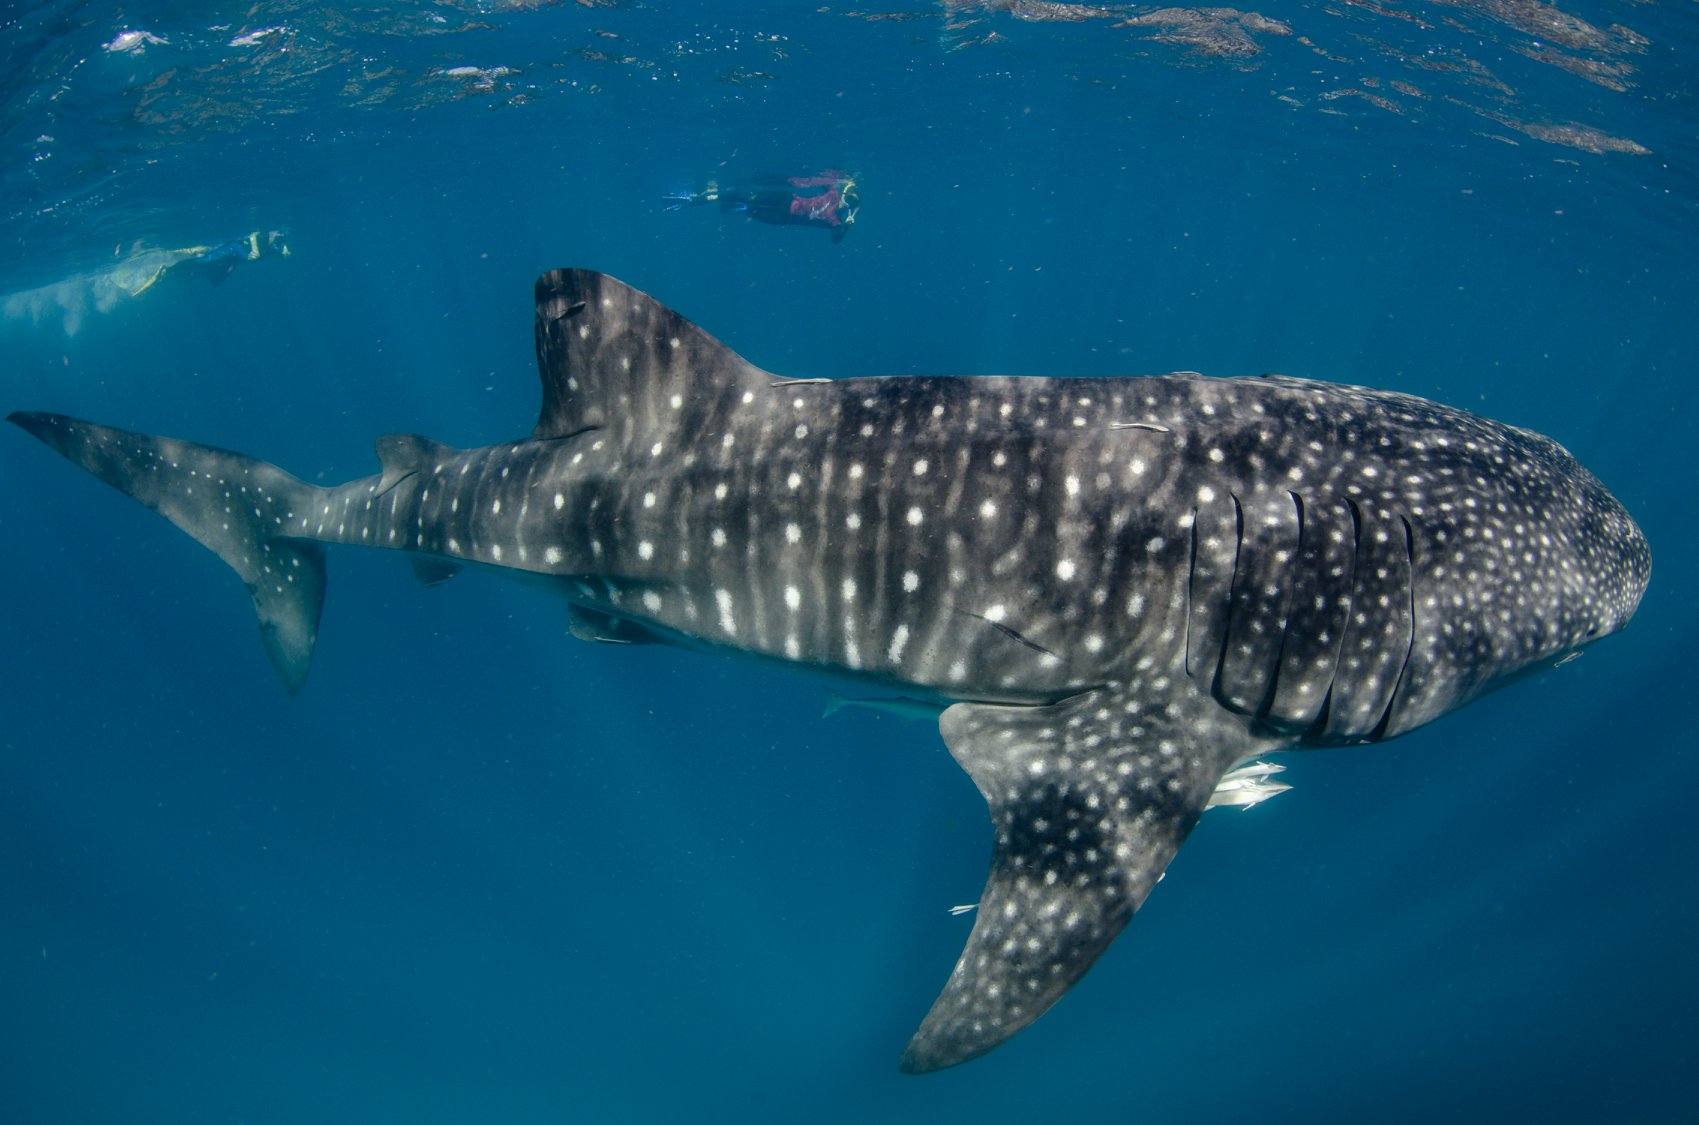 NINGALOO'S ECOCEAN LEAD WHALE SHARK RESEARCH AND INITIATED THE SYSTEM FOR WILDBOOK FOR WHALESHARKS. IMAGE: THANKS TO NINGALOO VISITOR CENTER FACEBOOK PAGE